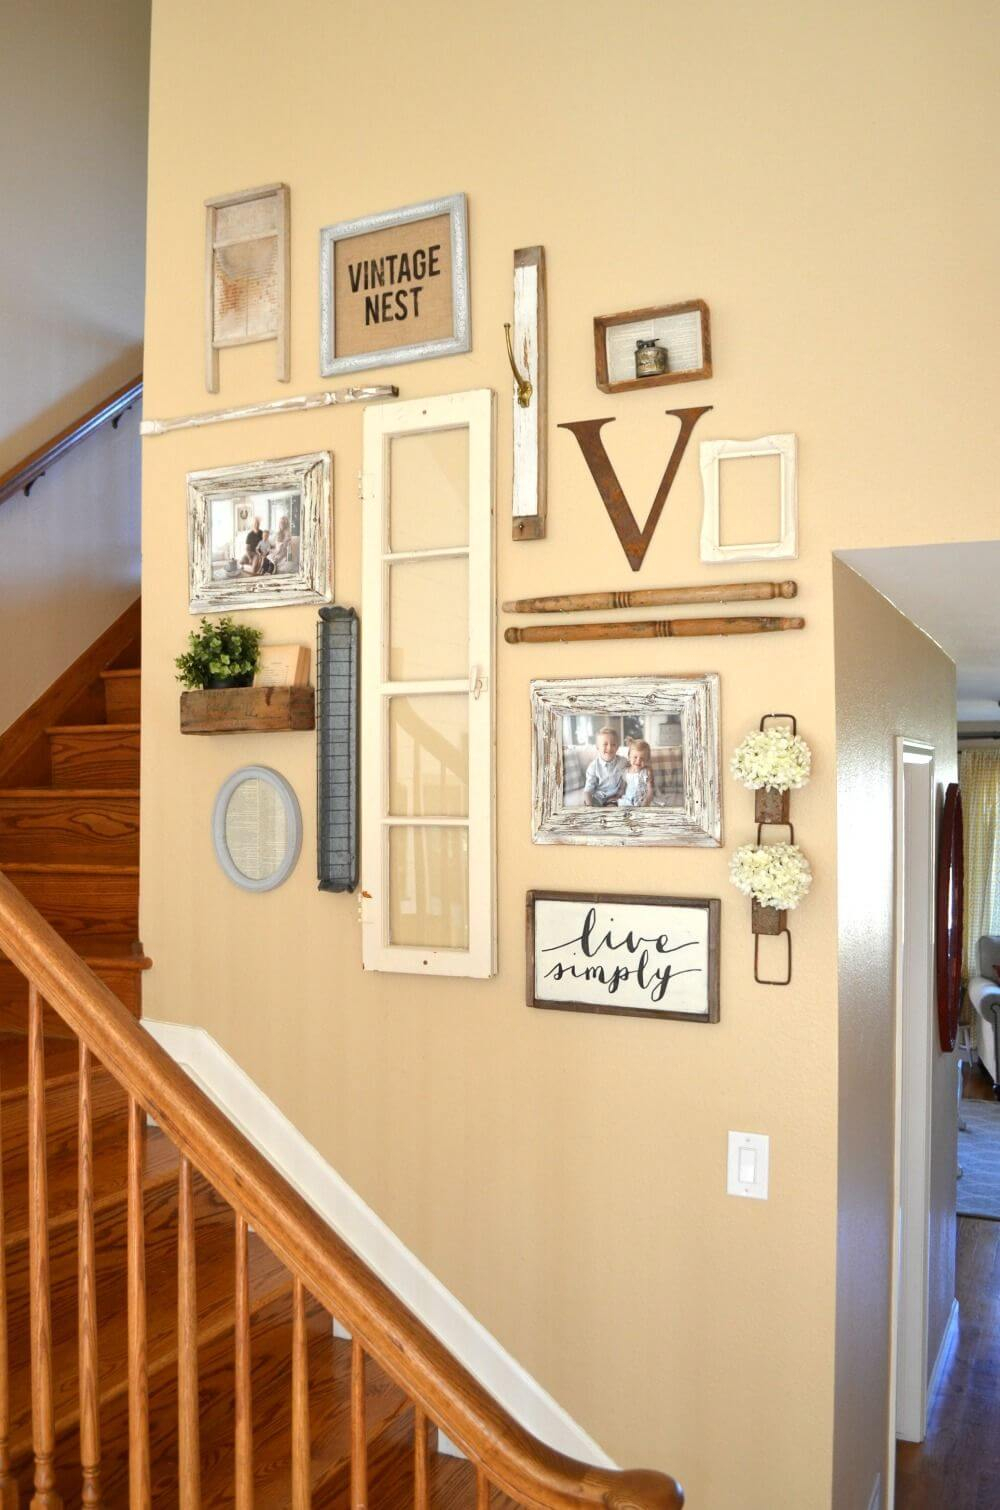 28 Best Stairway Decorating Ideas And Designs For 2019 throughout Landing Art Wall Decor (Image 3 of 30)